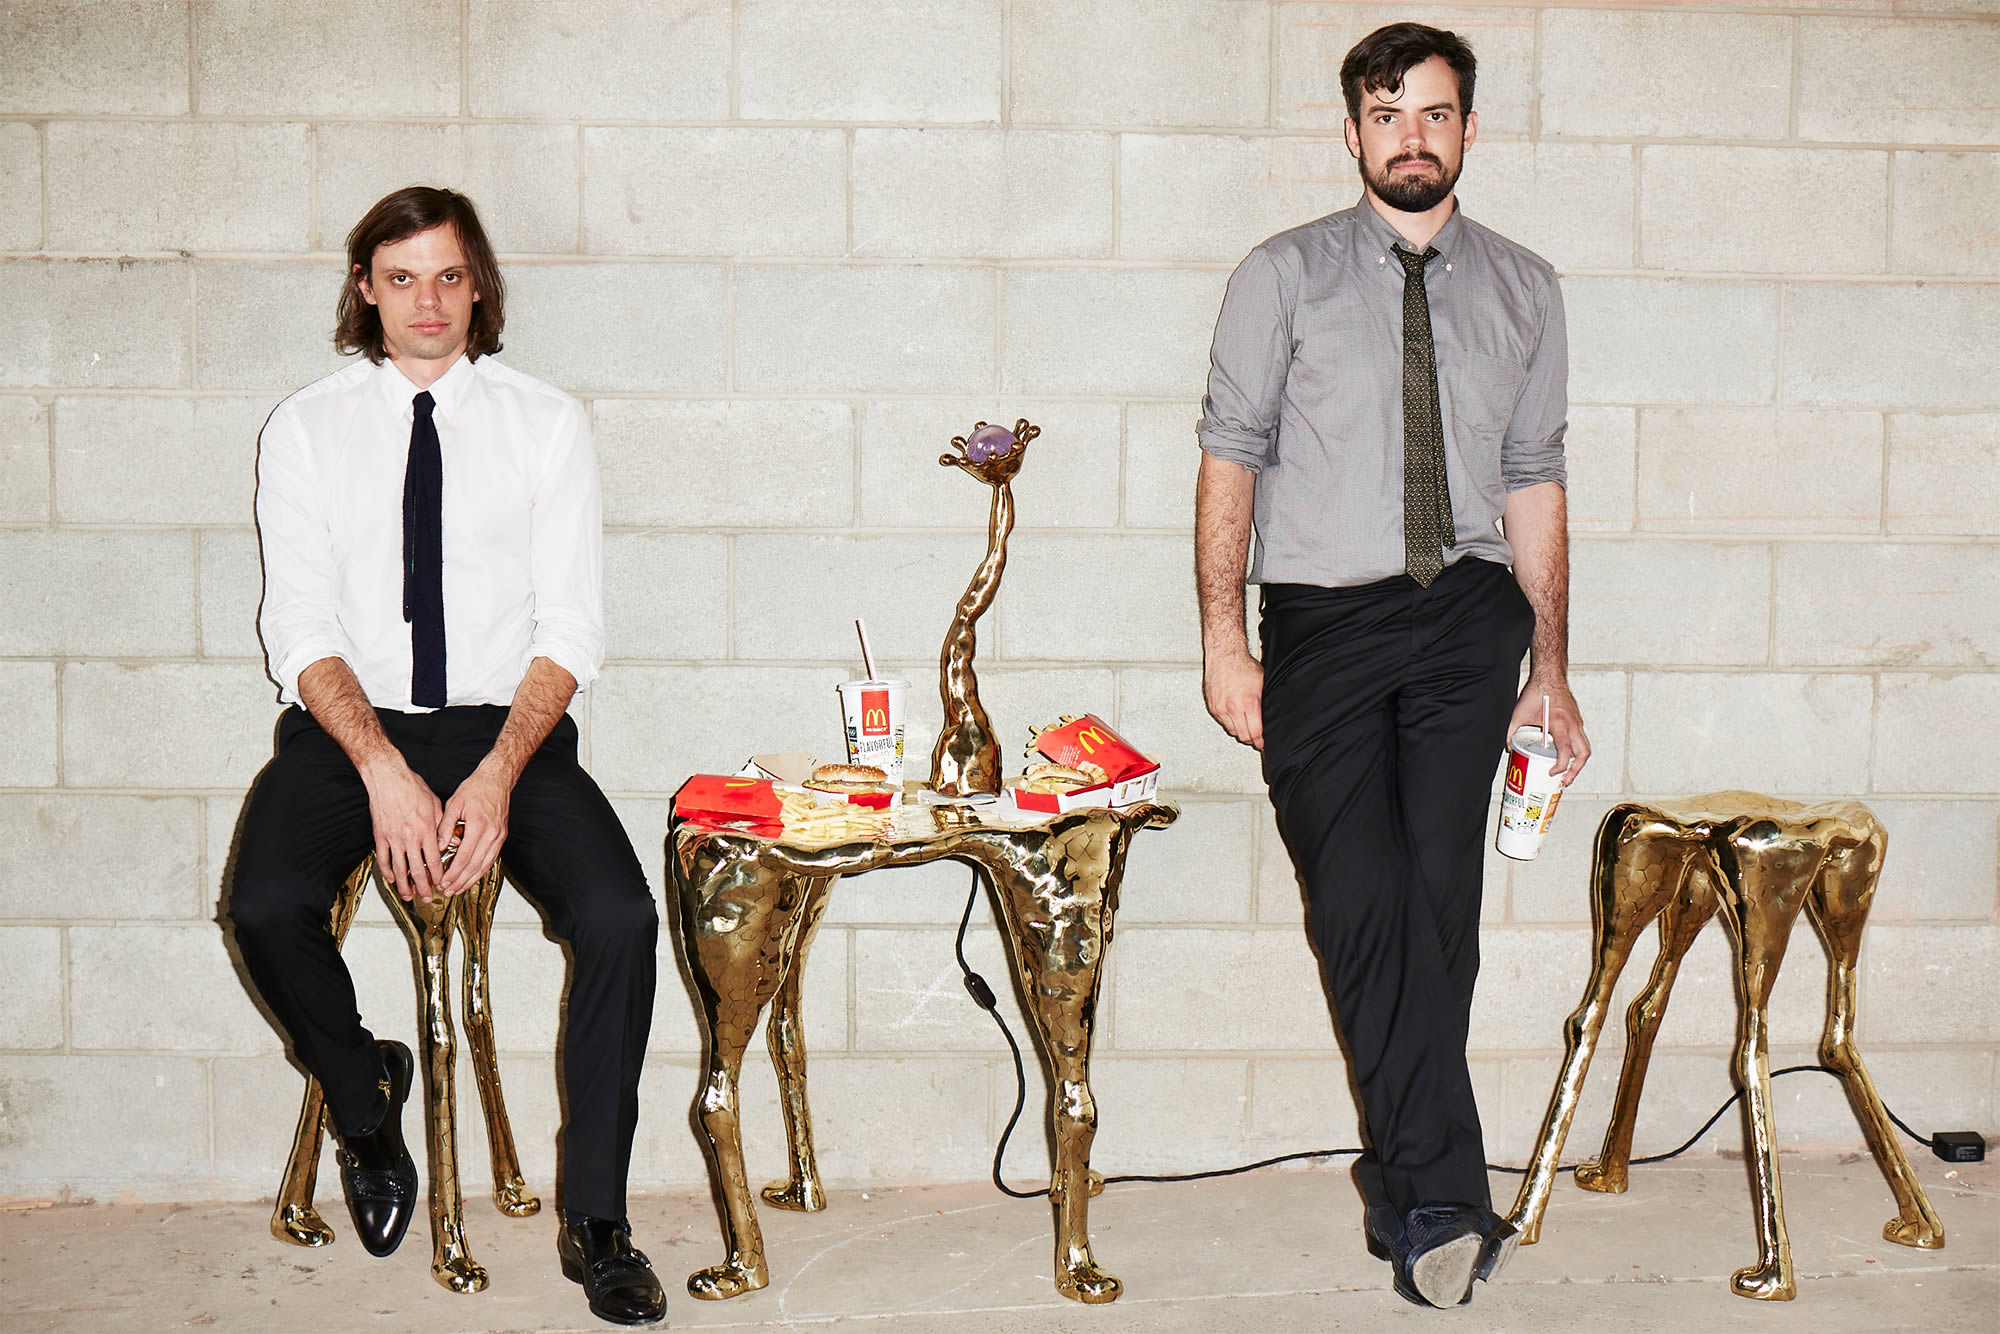 The Haas Brothers posing with furniture